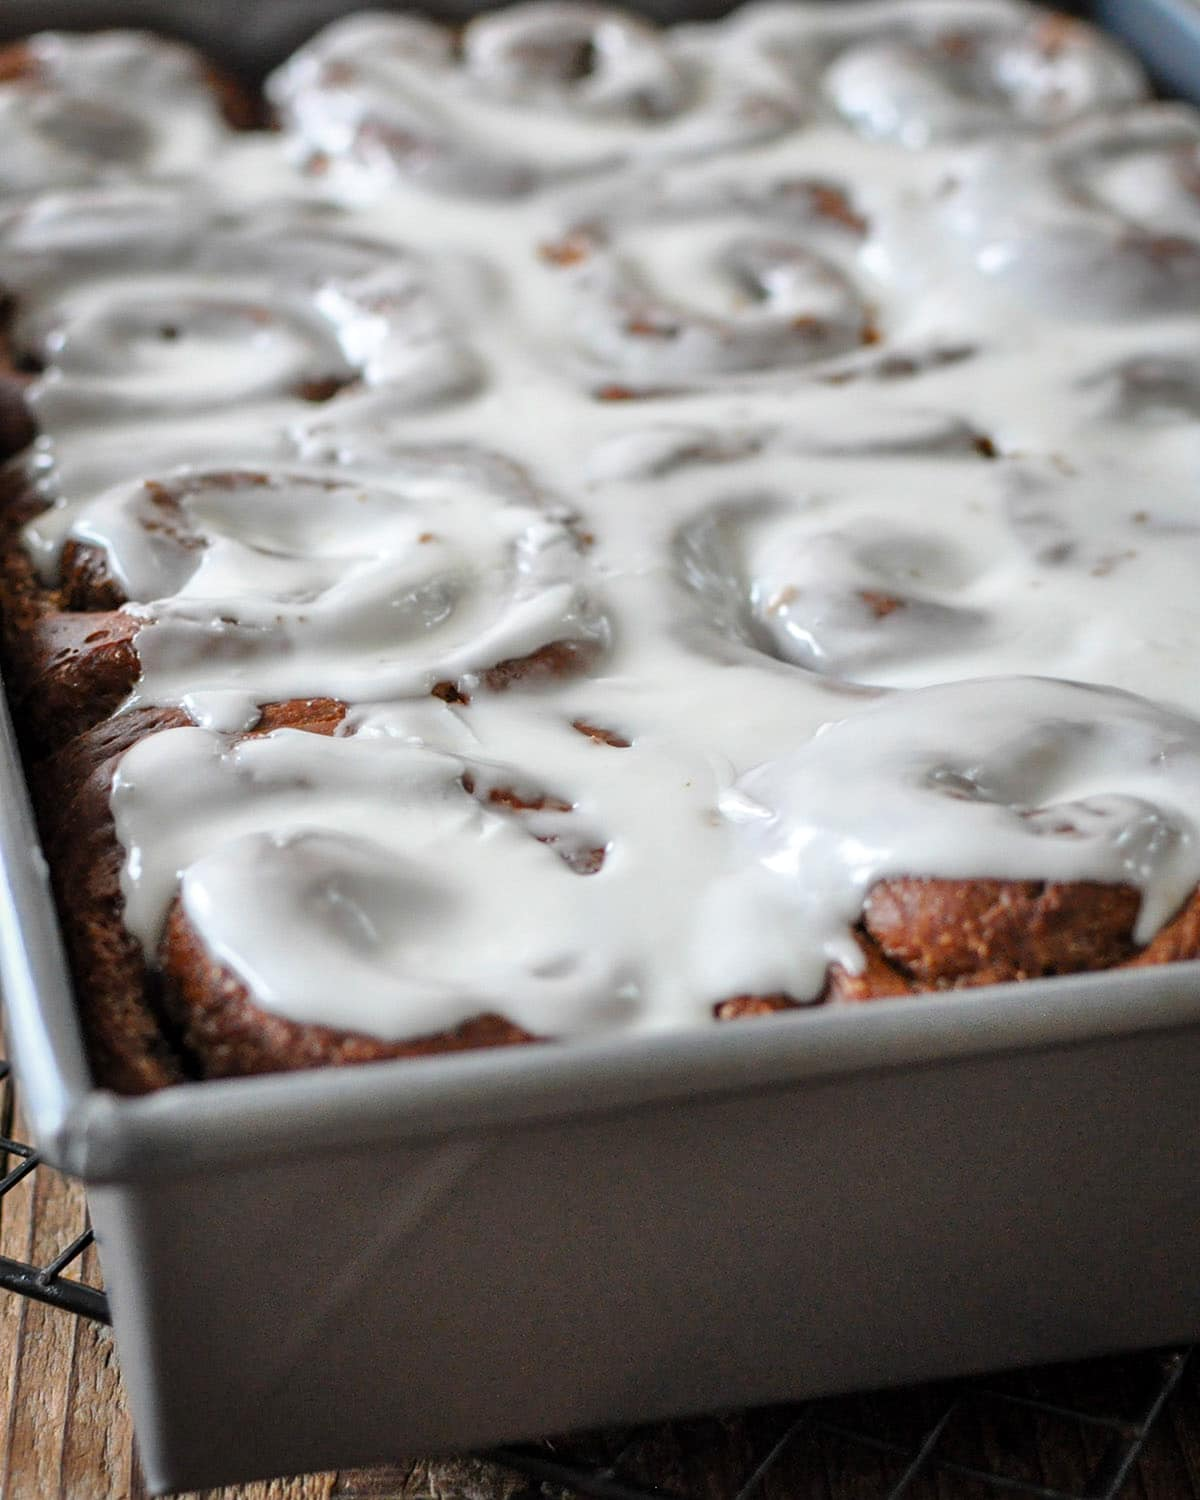 a baking pan filled with frosted chocolate cinnamon rolls